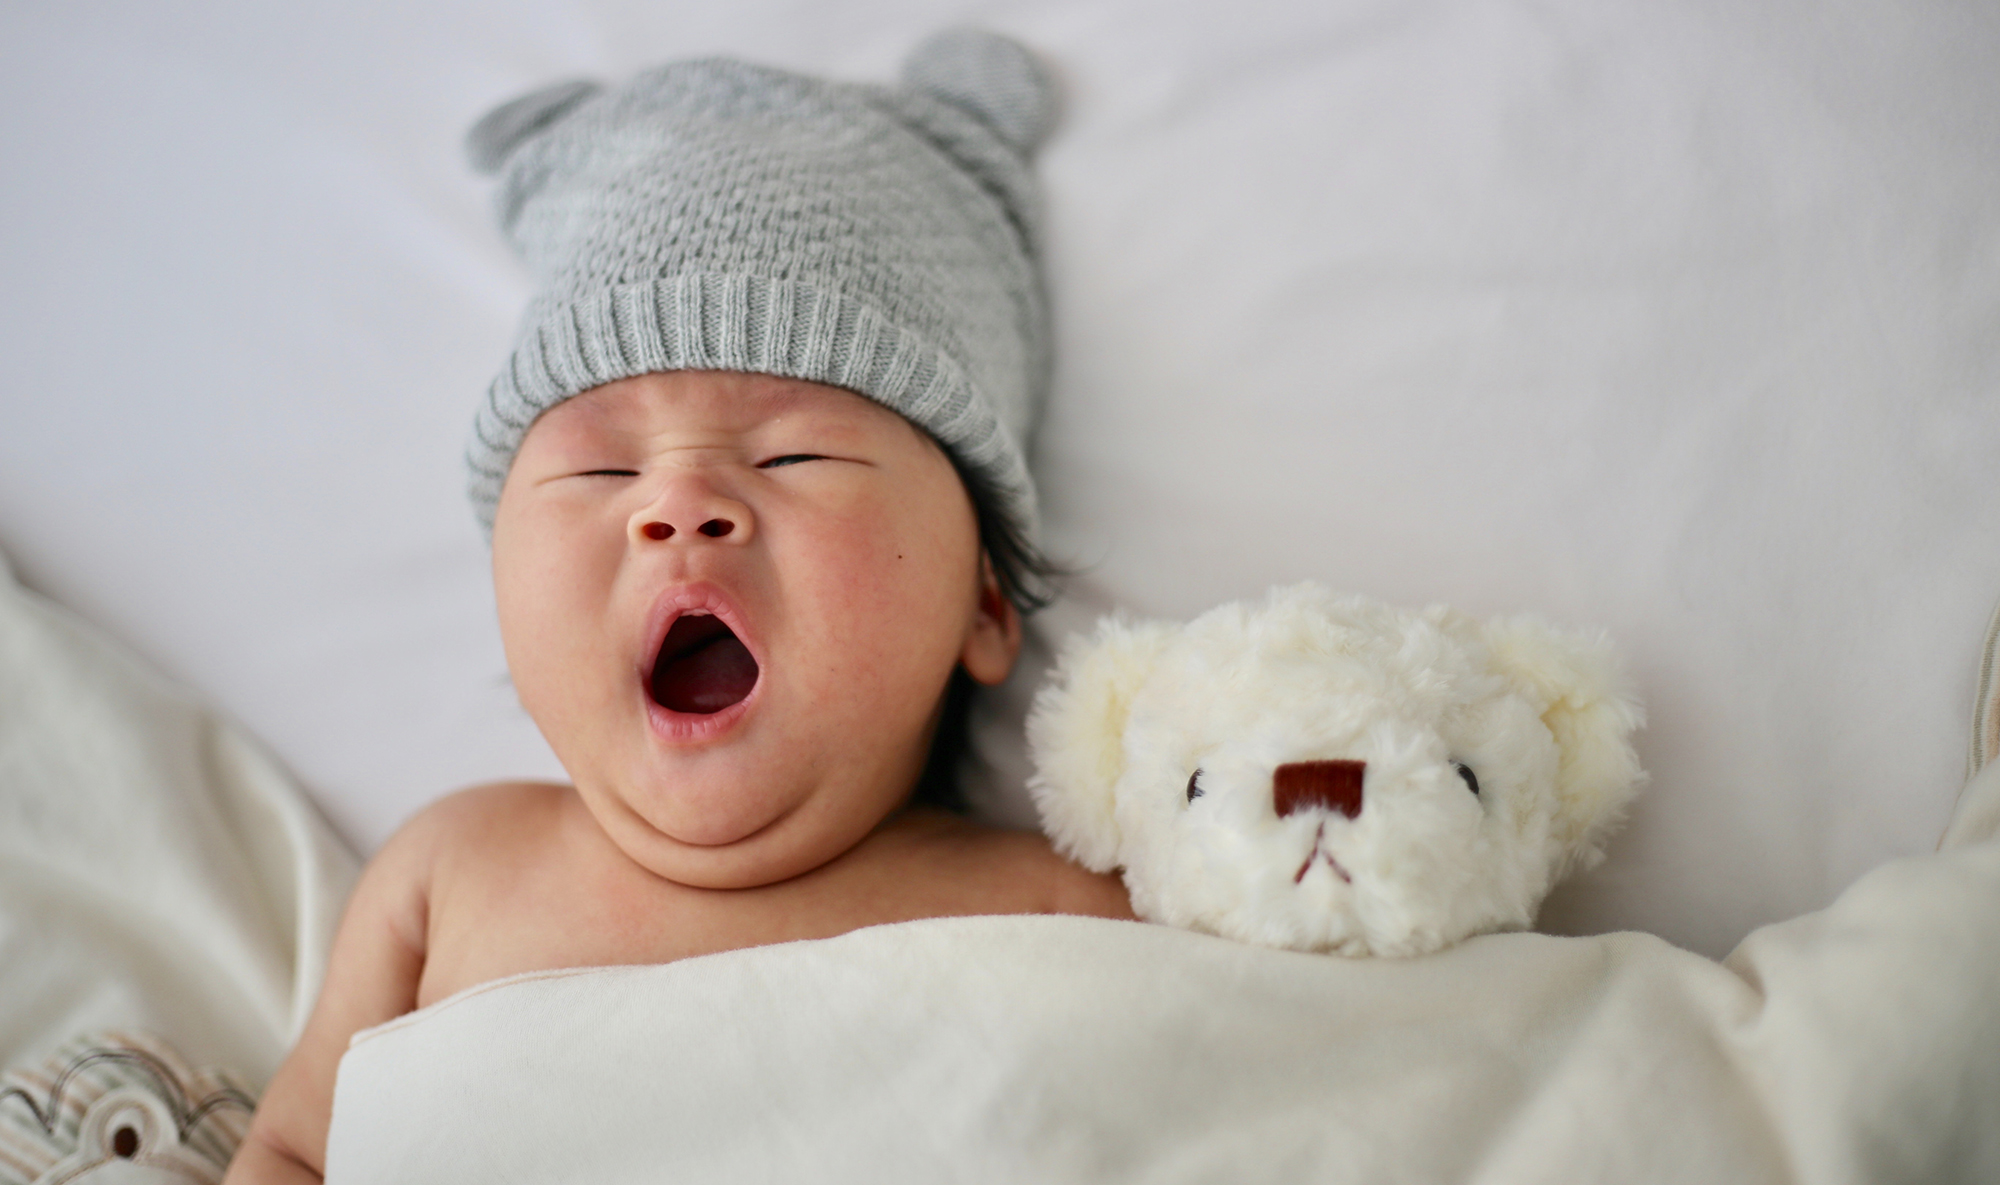 These 6 good sleep habits help your baby sleep and have better sleep quality.